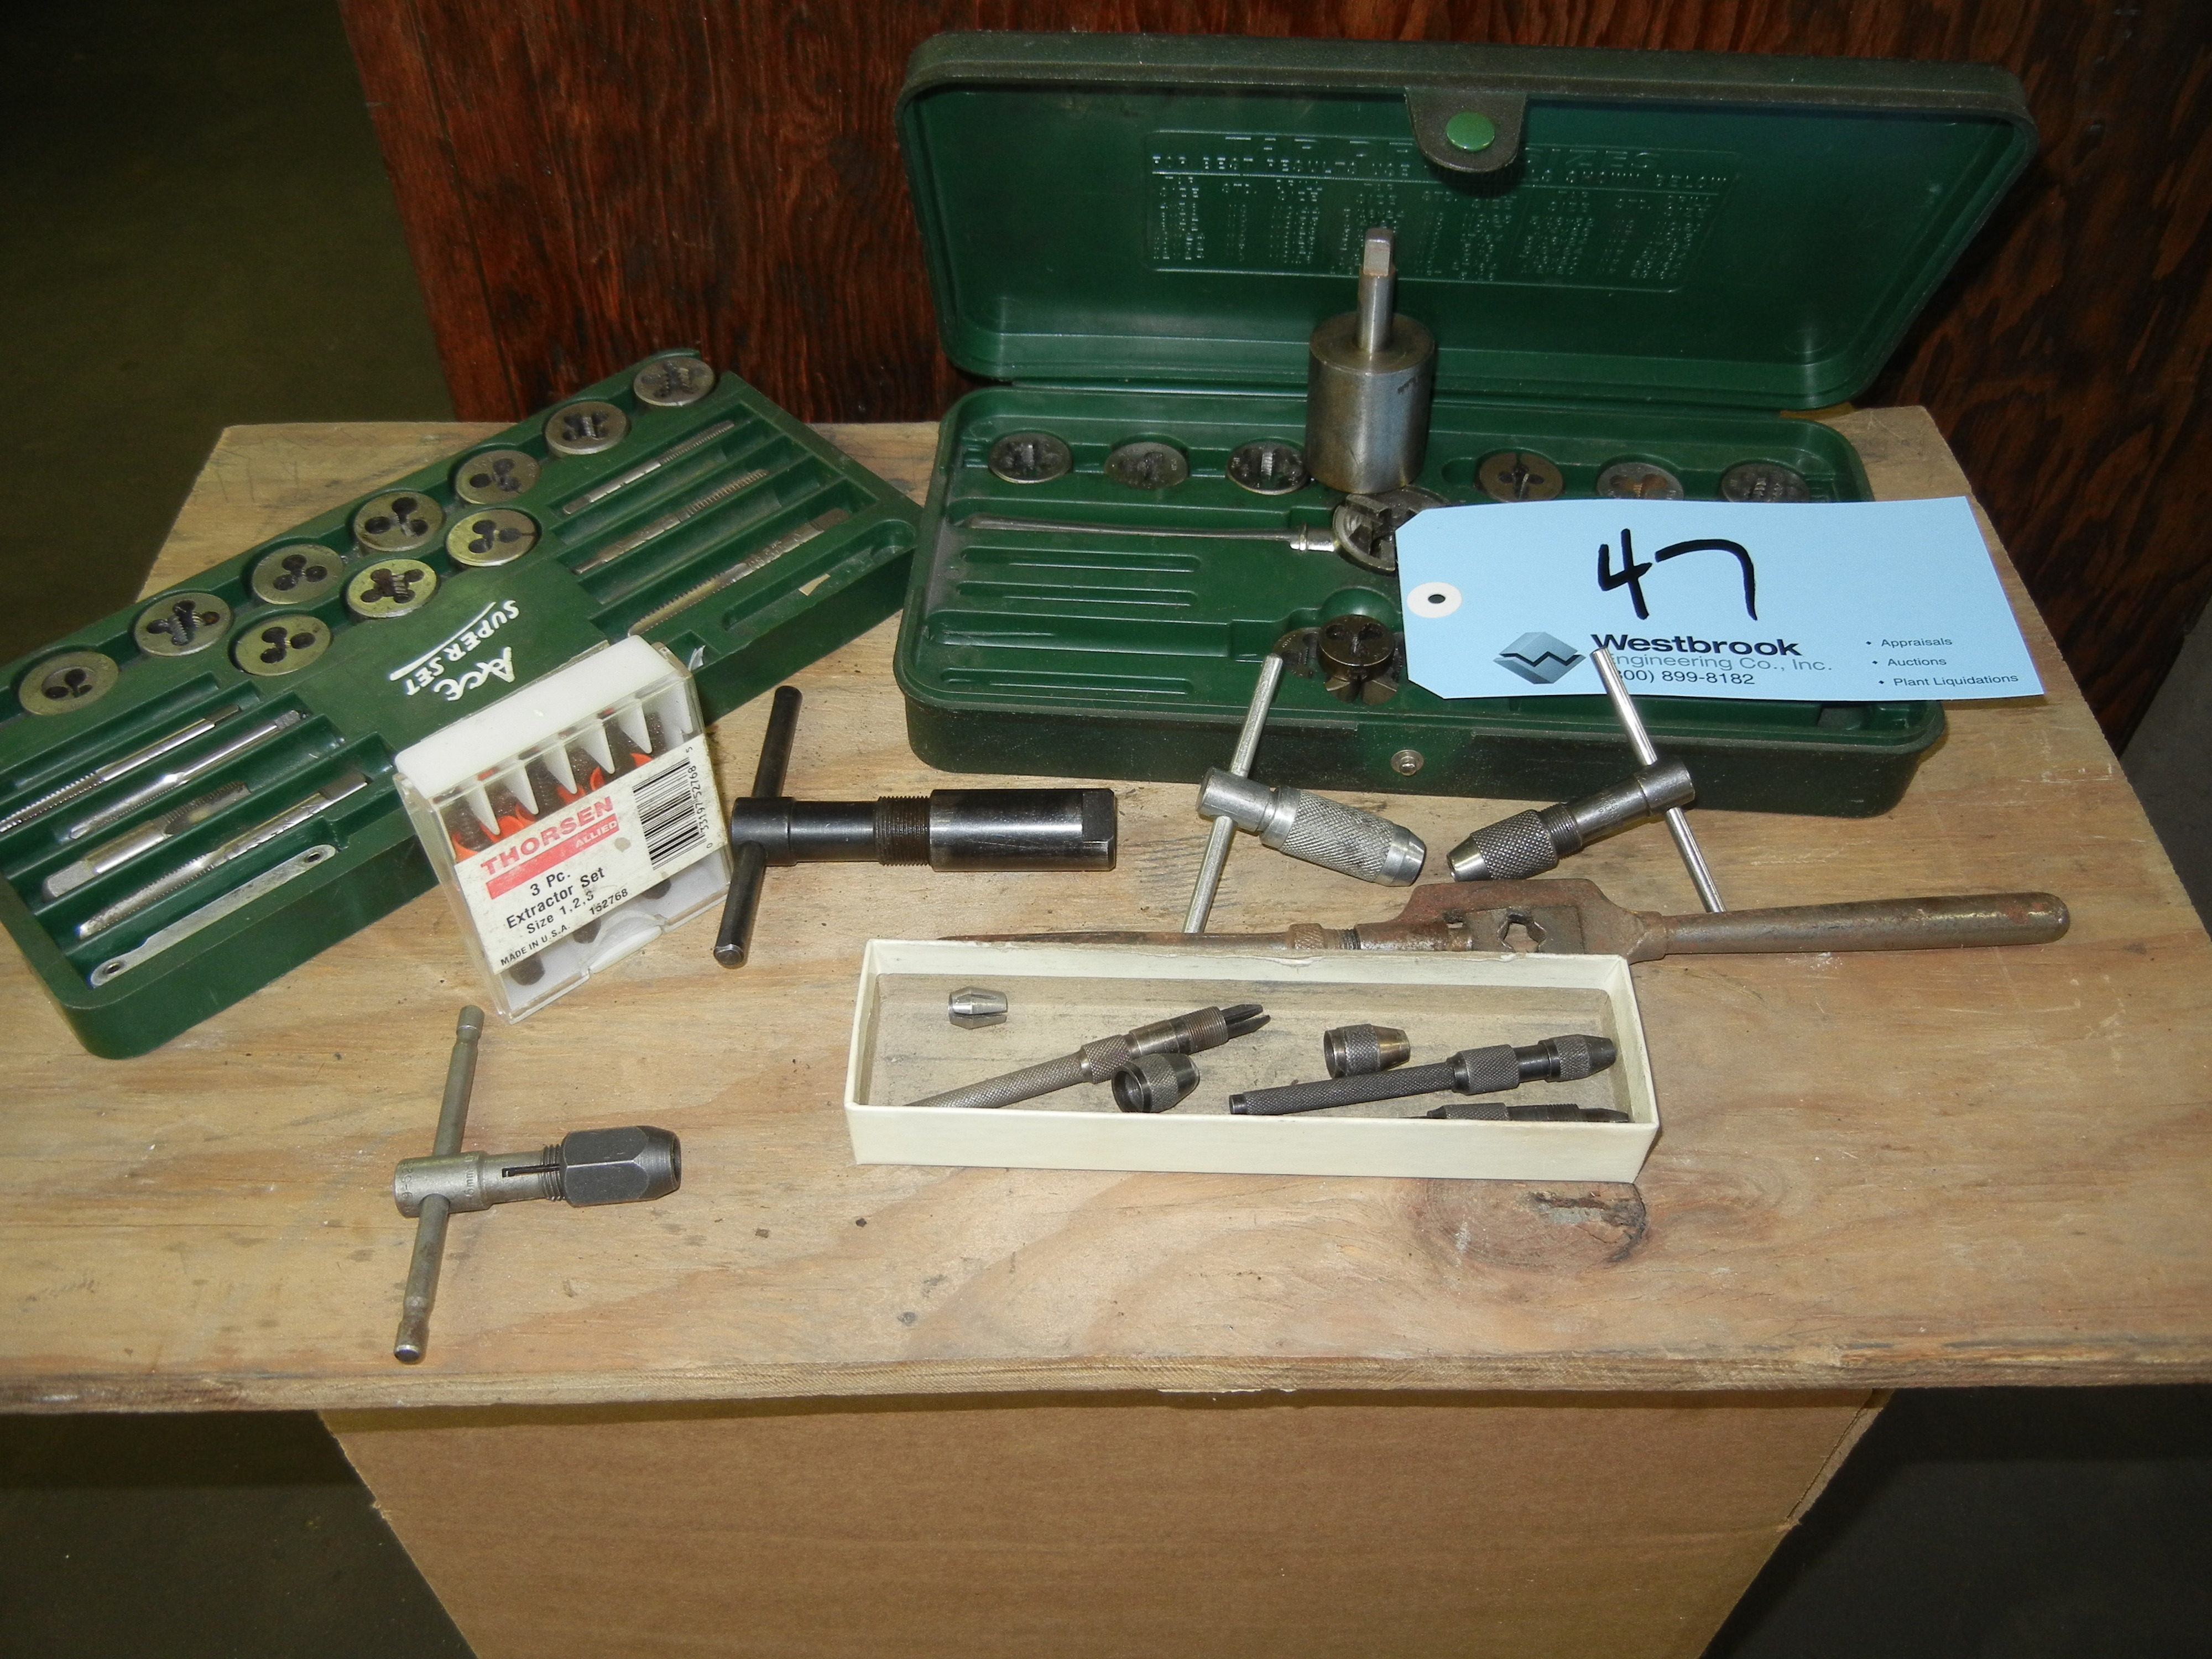 Tap and die set on table